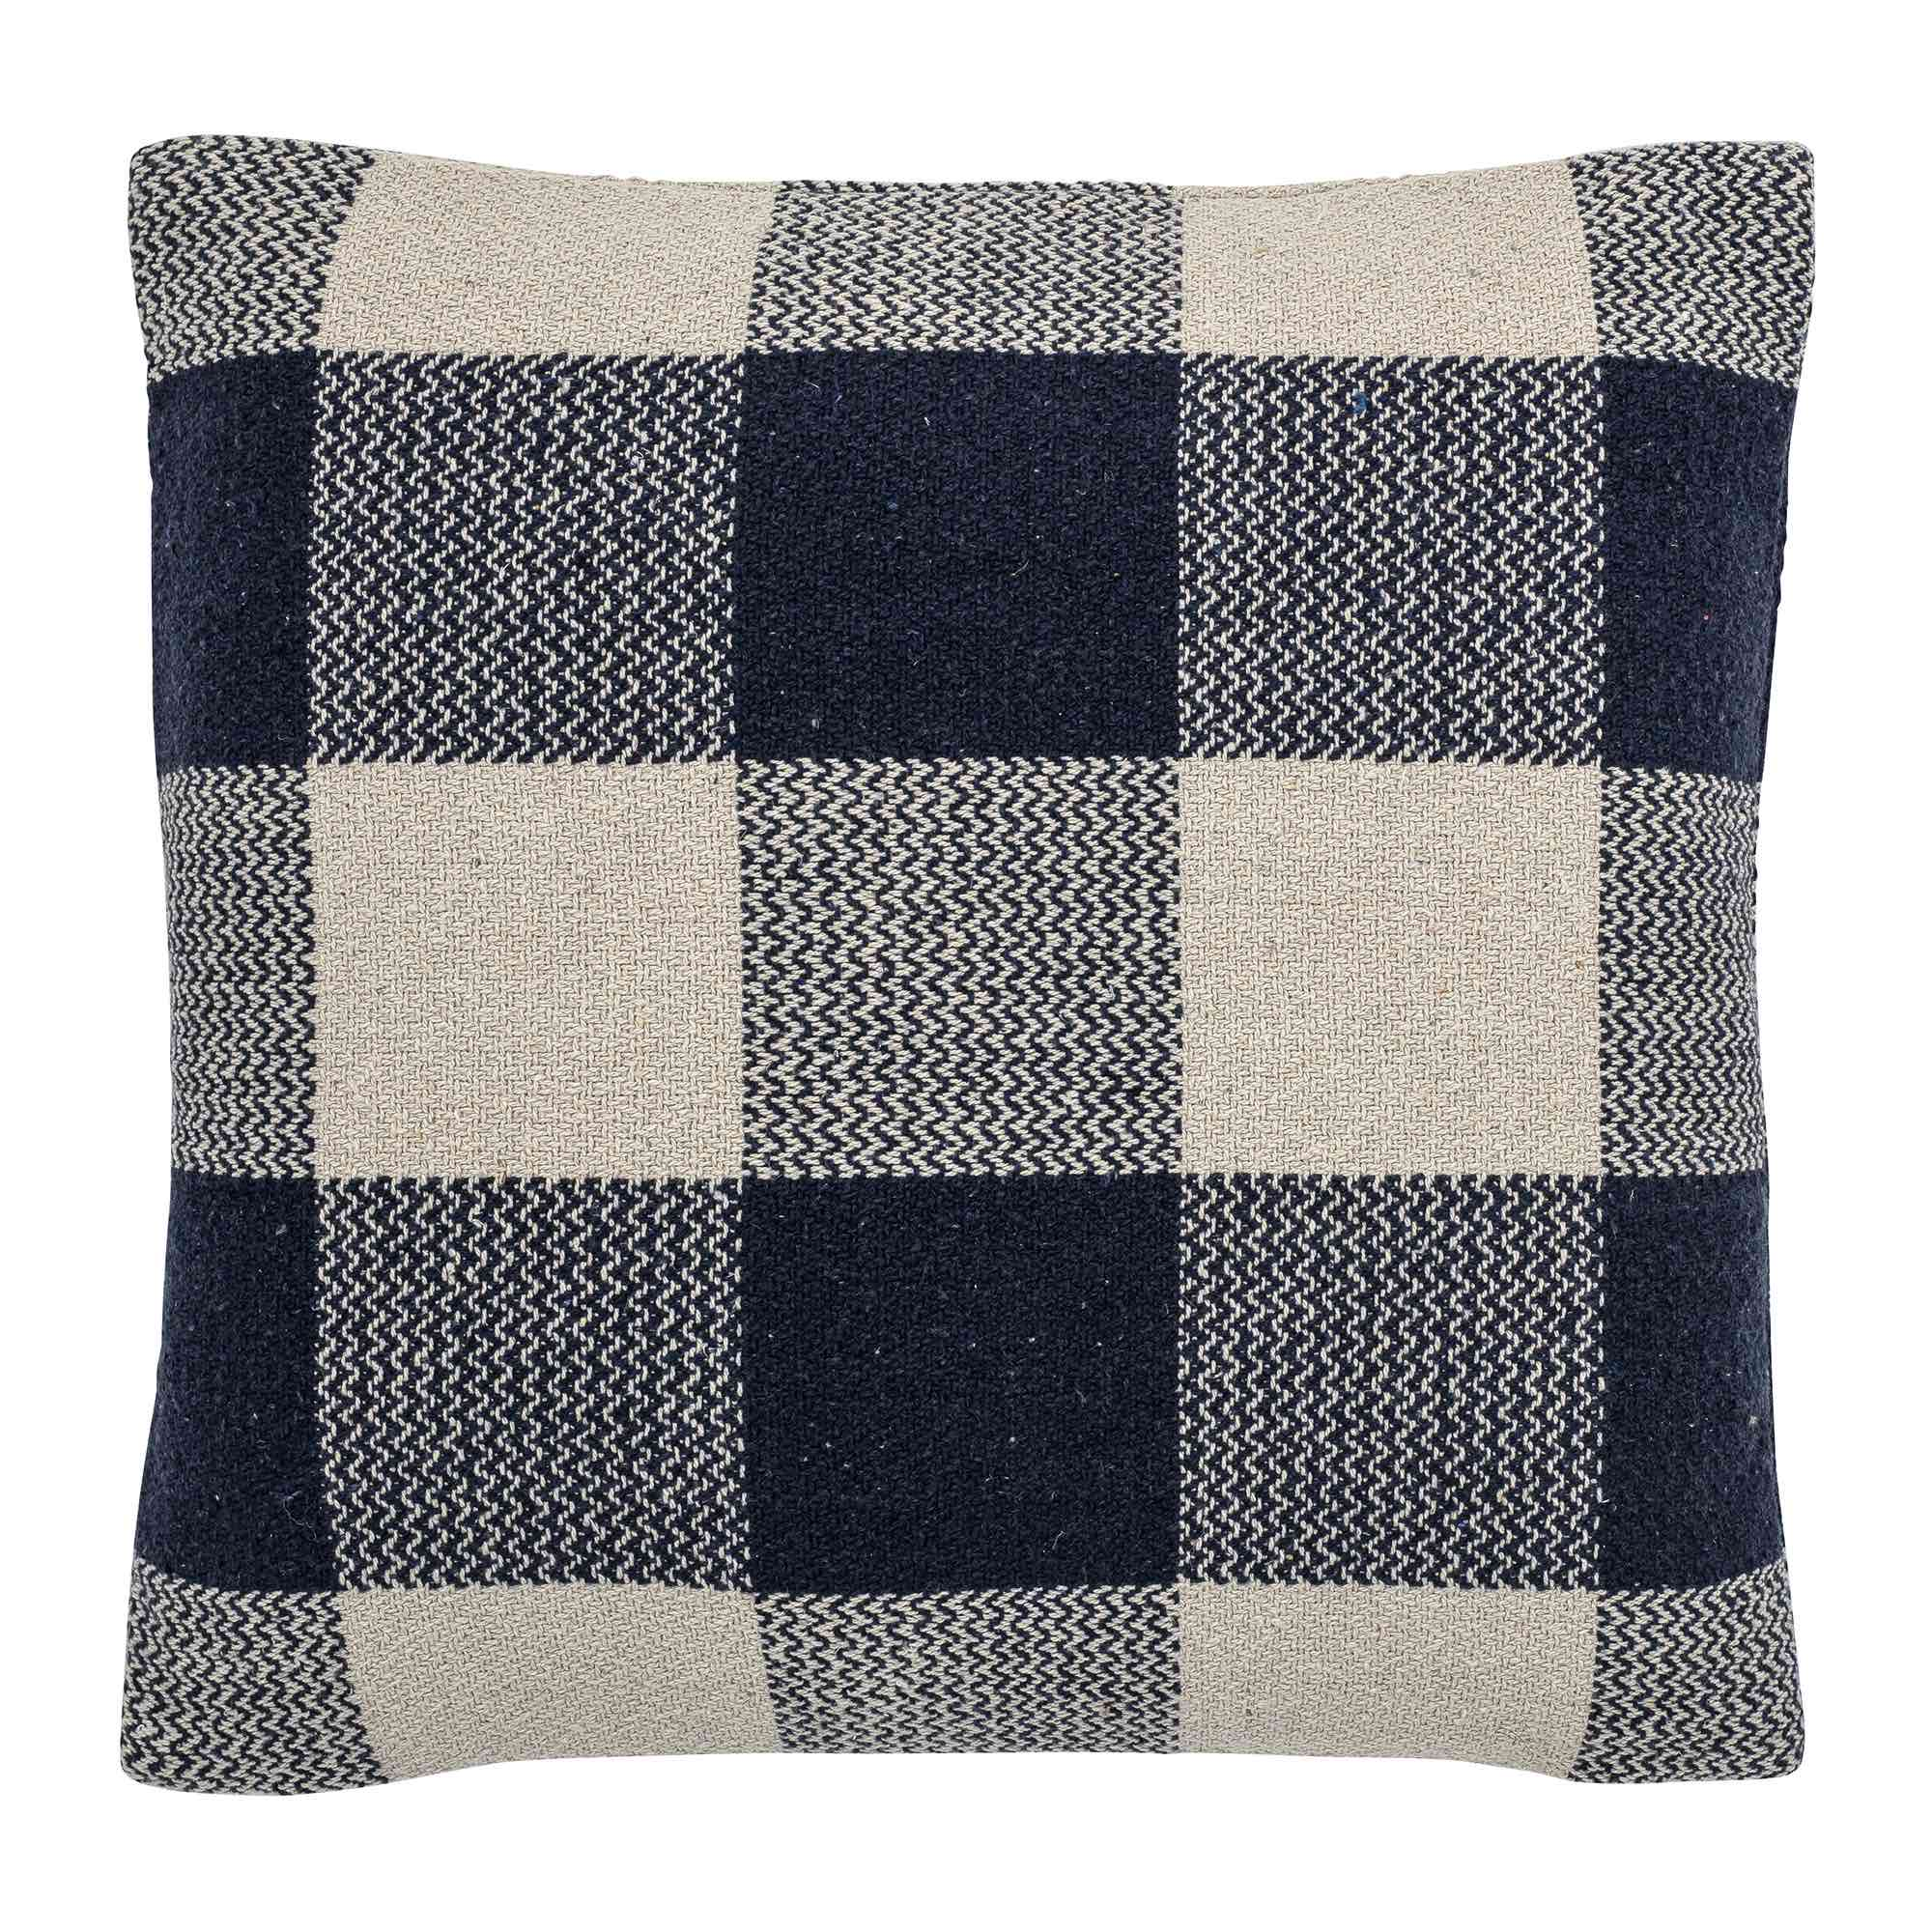 Bloomingville Cushion Blue, Recycled Cotton - Scandi Minimal